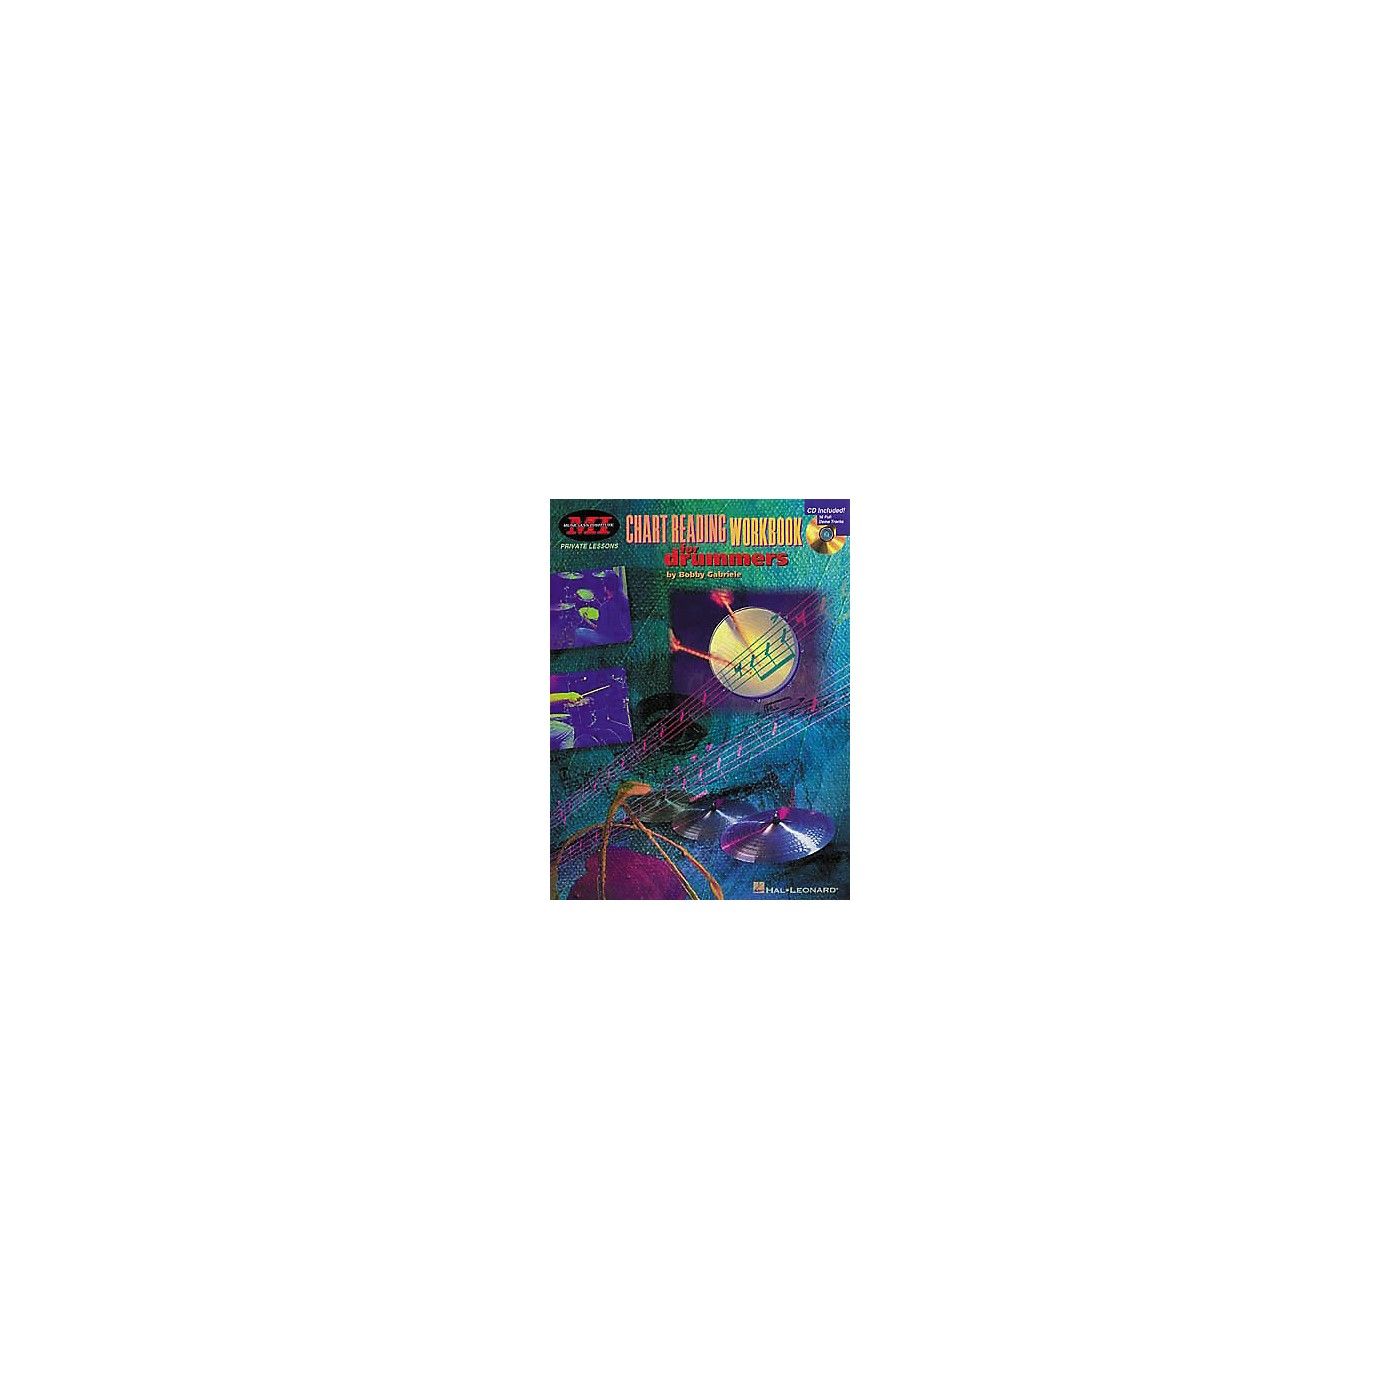 Hal Leonard Chart Reading Workbook for Drummers Book/CD thumbnail